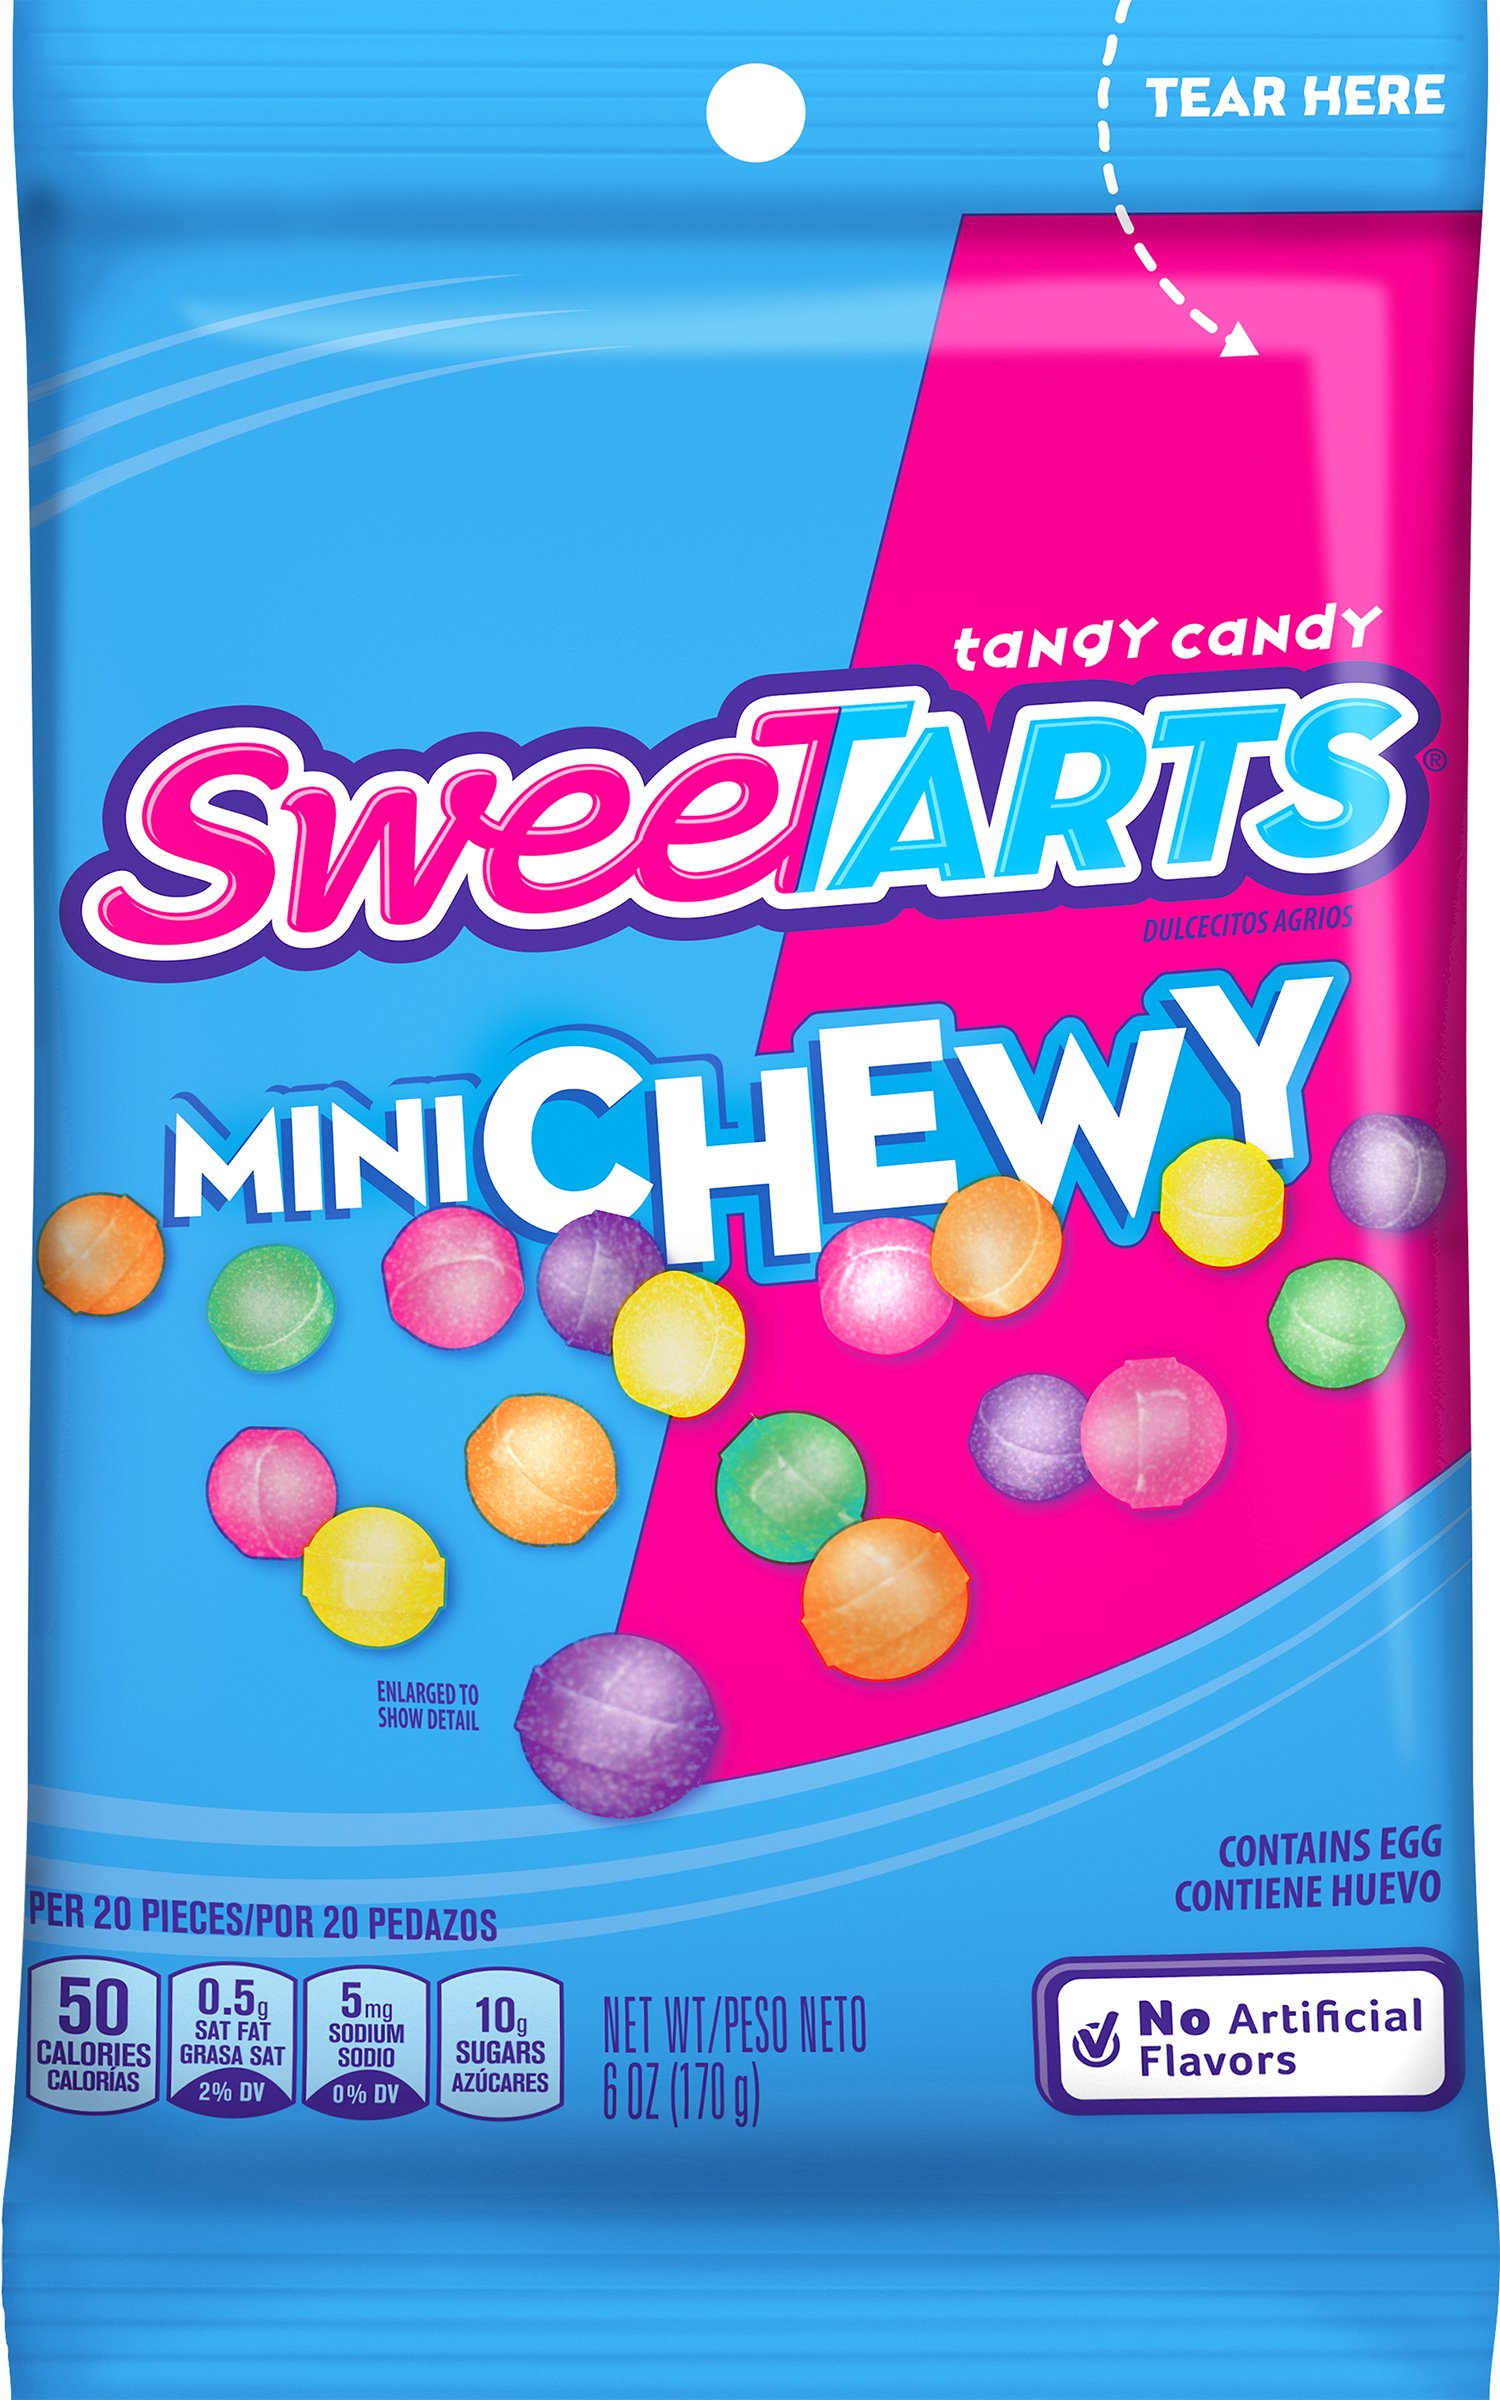 SweeTARTS Mini Chewy Candy Peg Bag, 6 Ounce (Pack of 12) by SweeTARTS